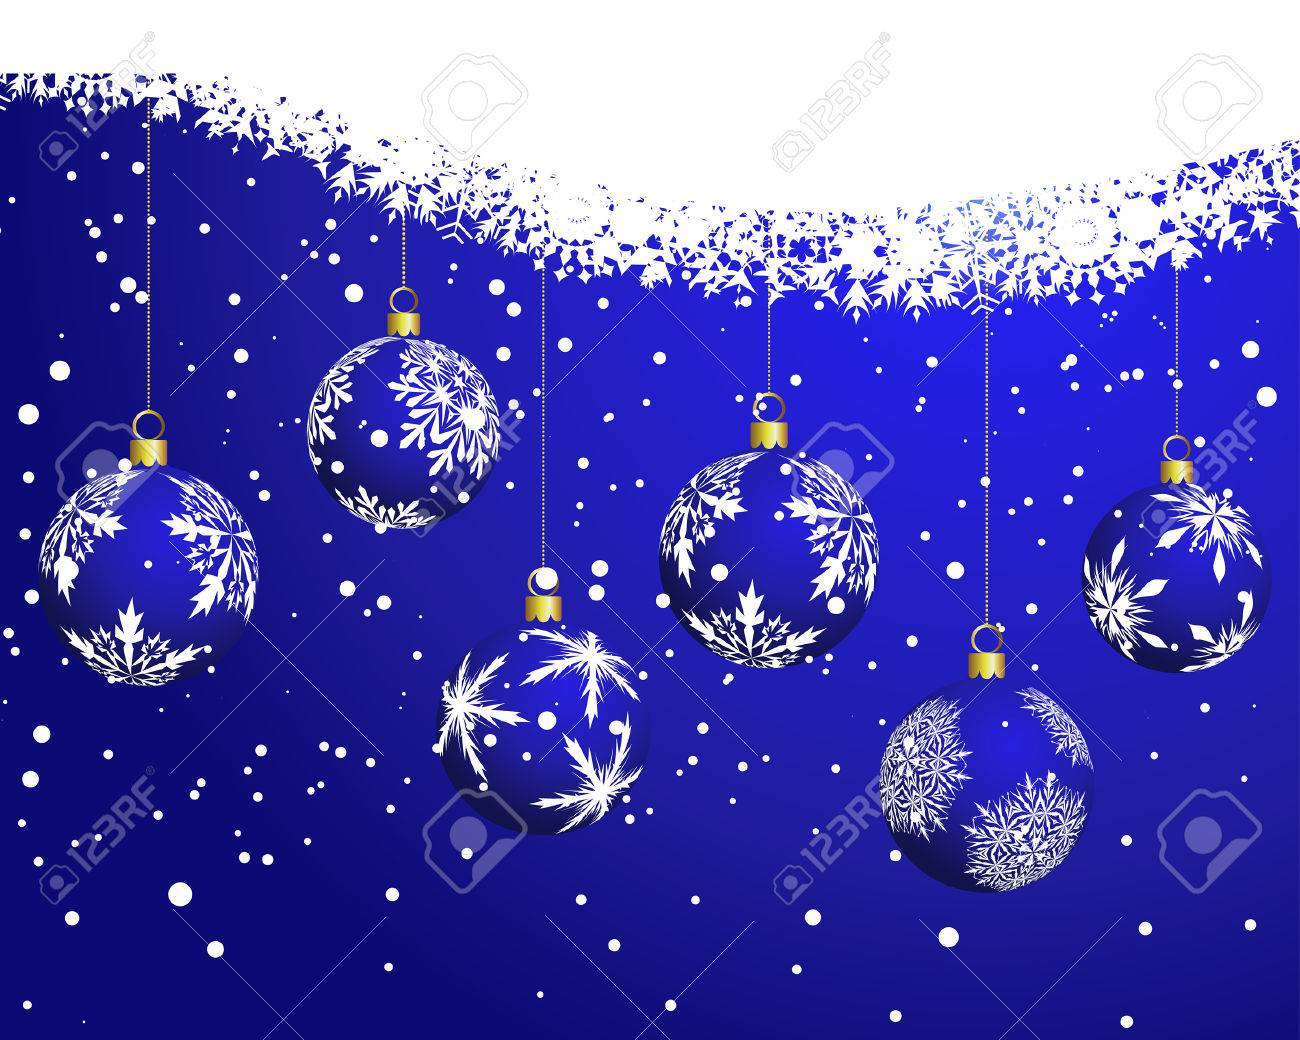 Beautiful vector christmas new year background for design use - Beautiful Vector Christmas New Year Background For Design Use Stock Vector 5868432